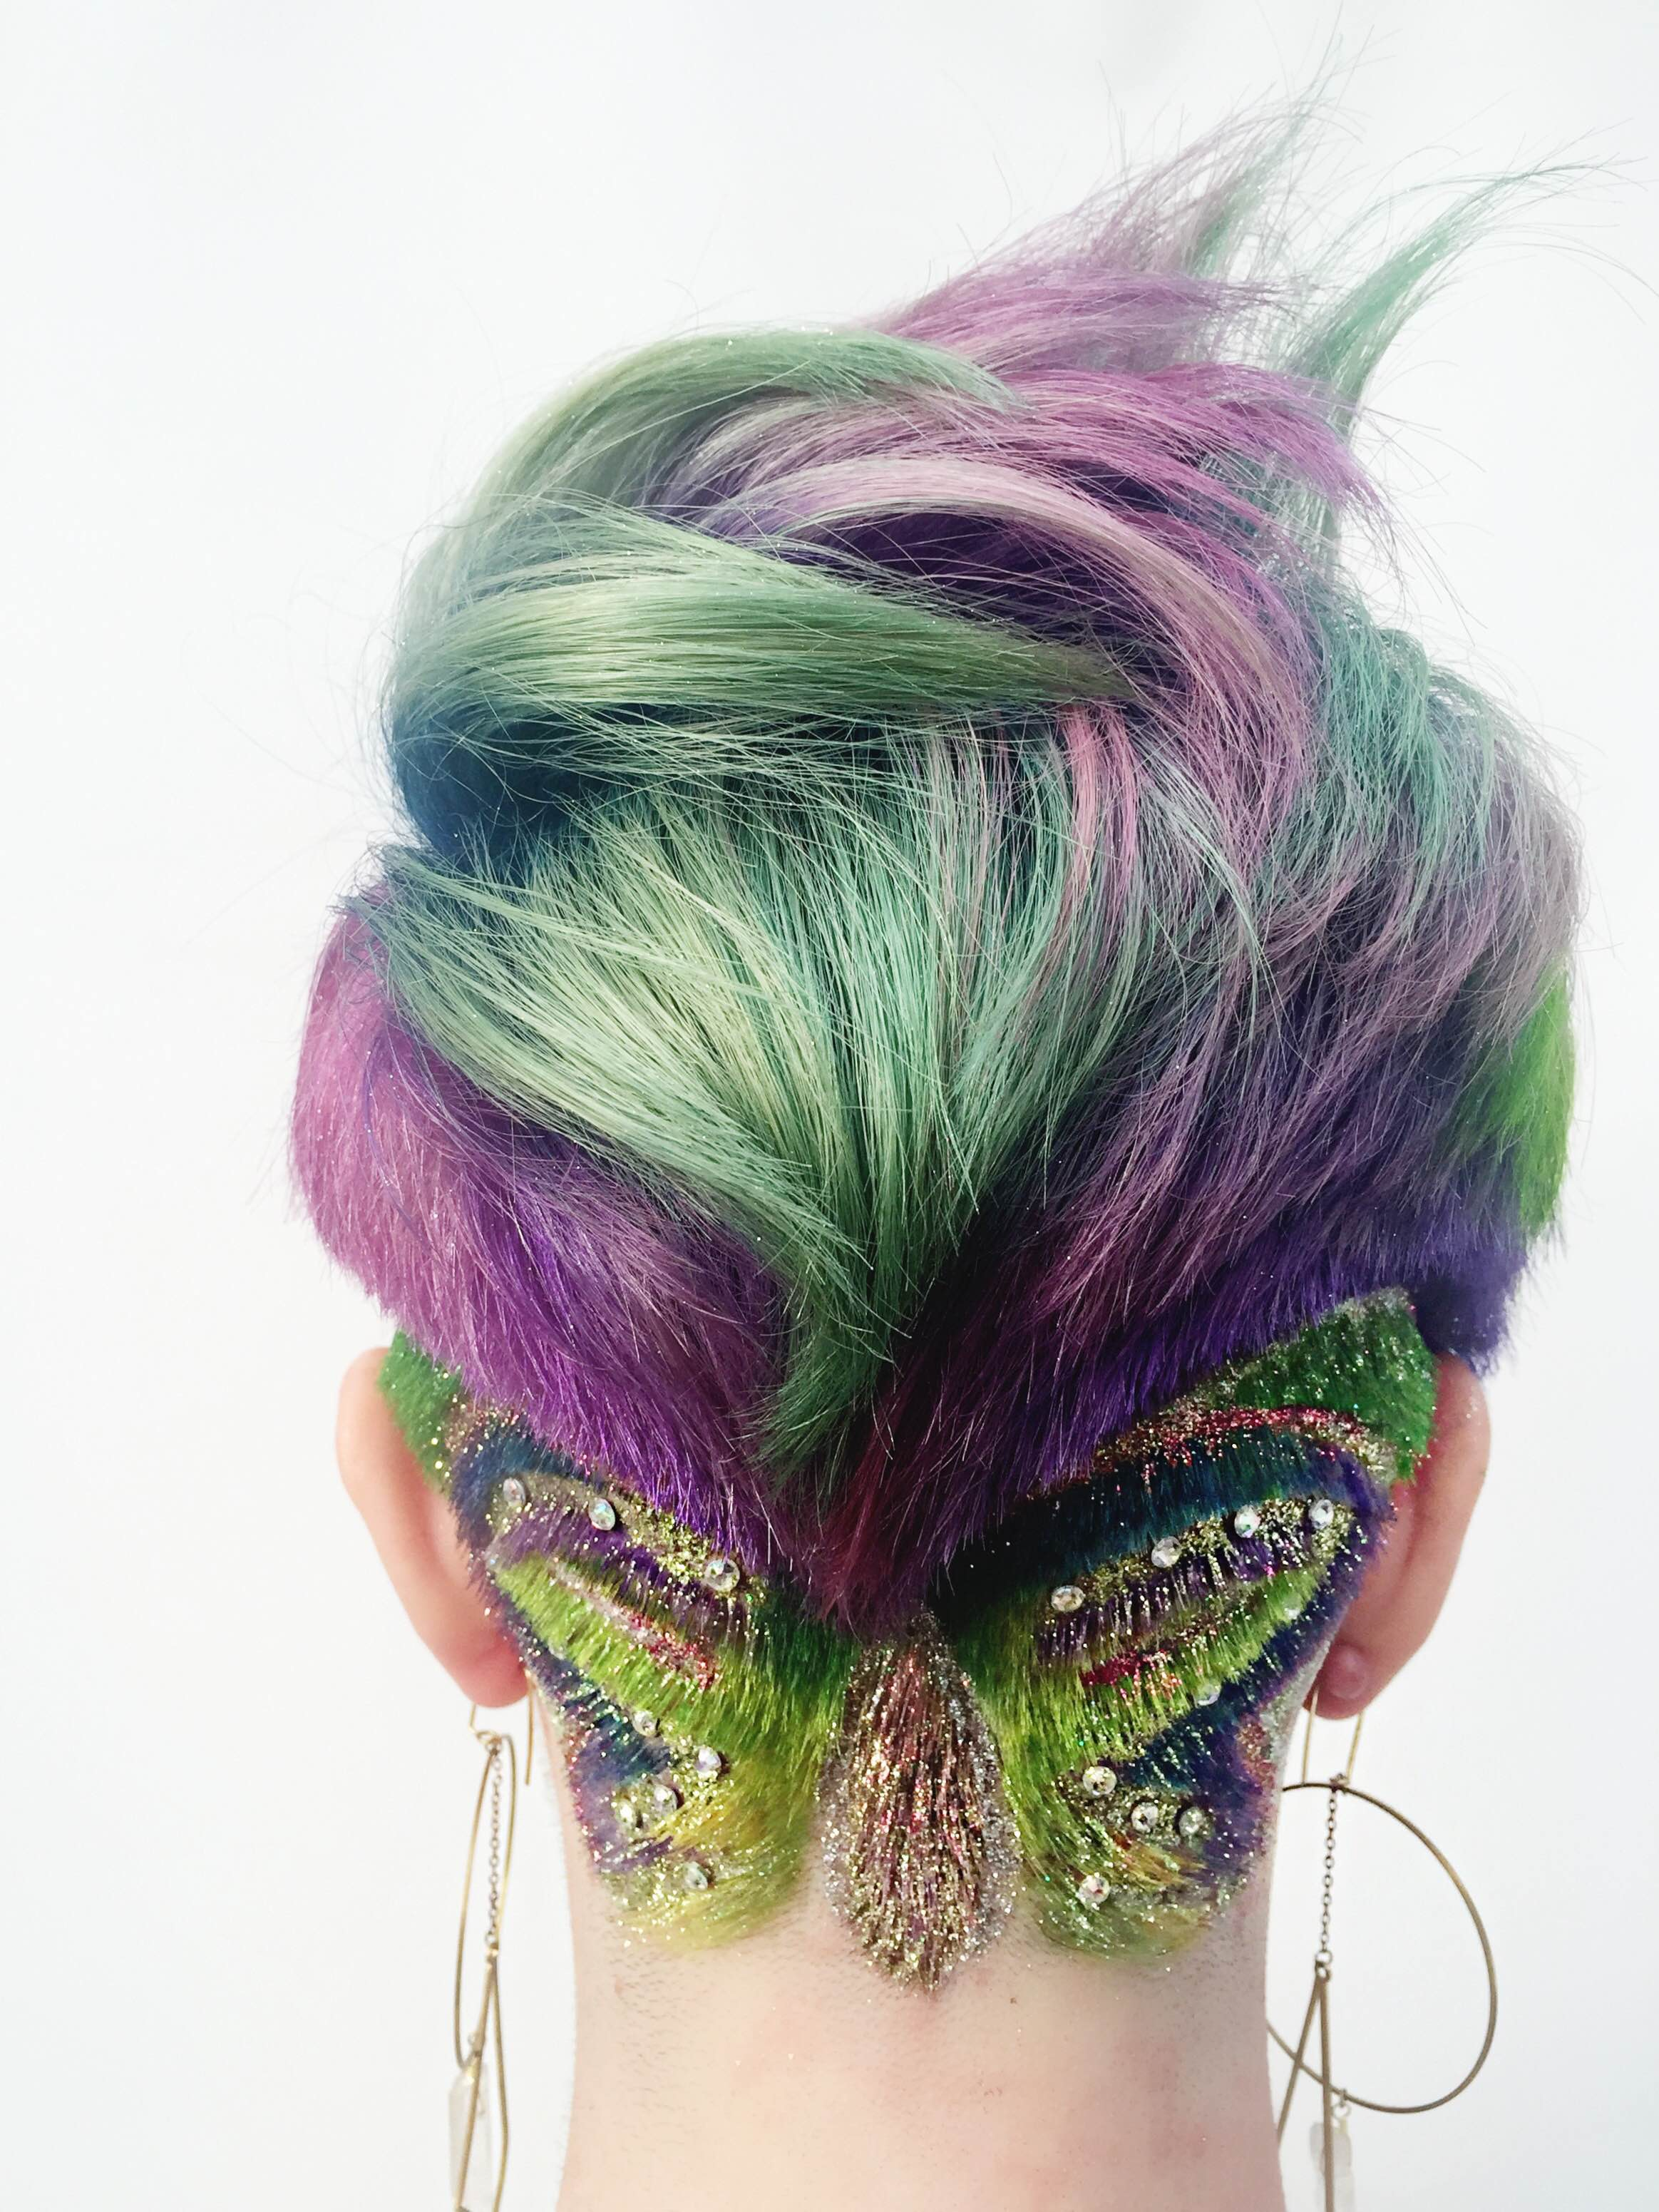 FORMULA: Vivid Color with a Butterfly Undercut